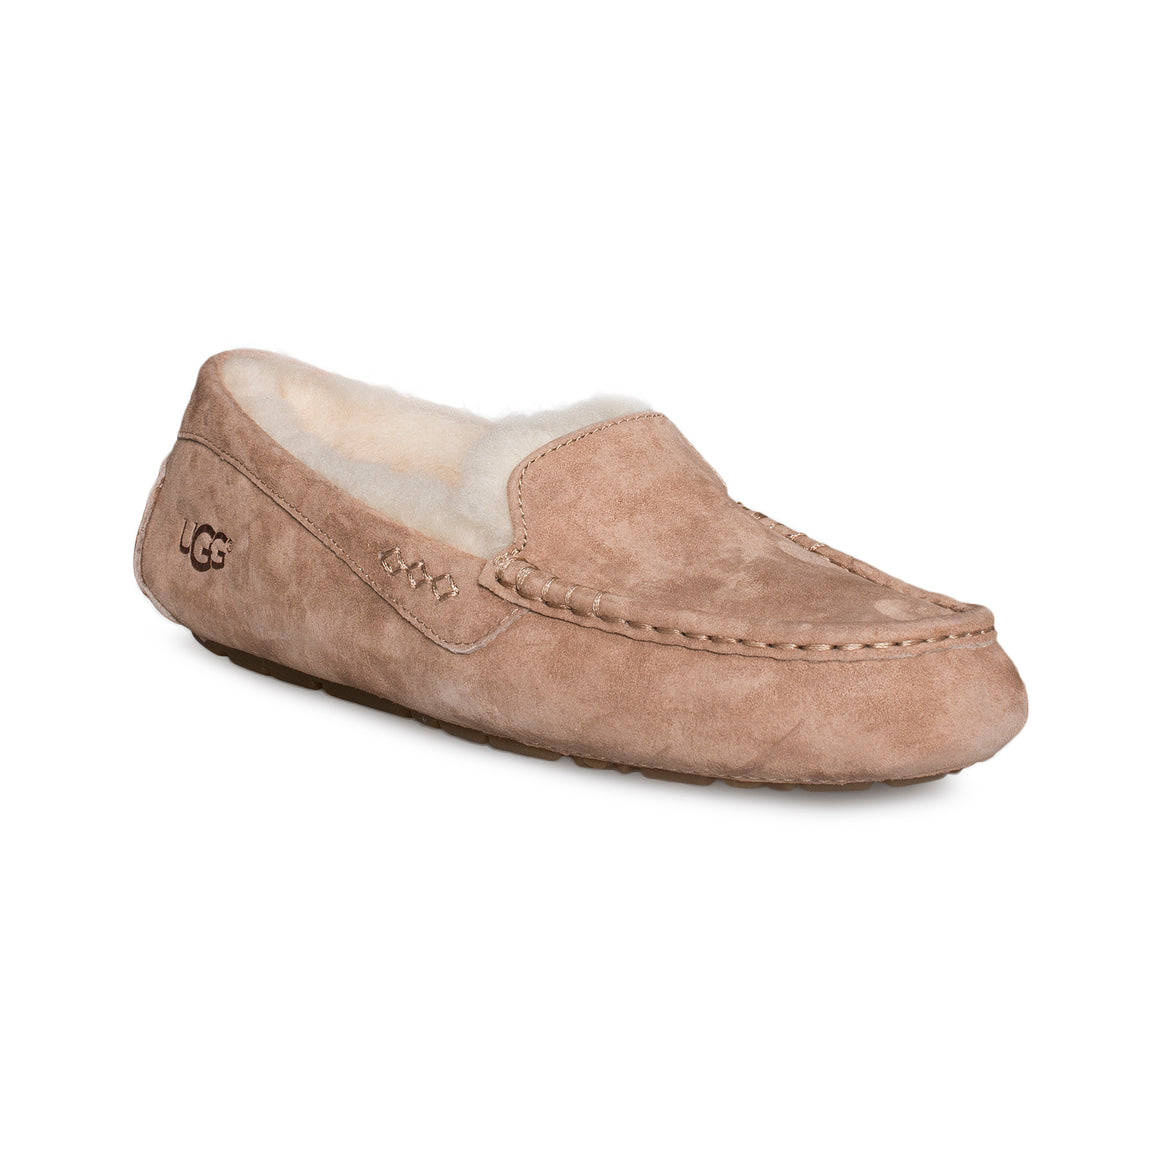 UGG Ansley Fawn Slippers - Women's